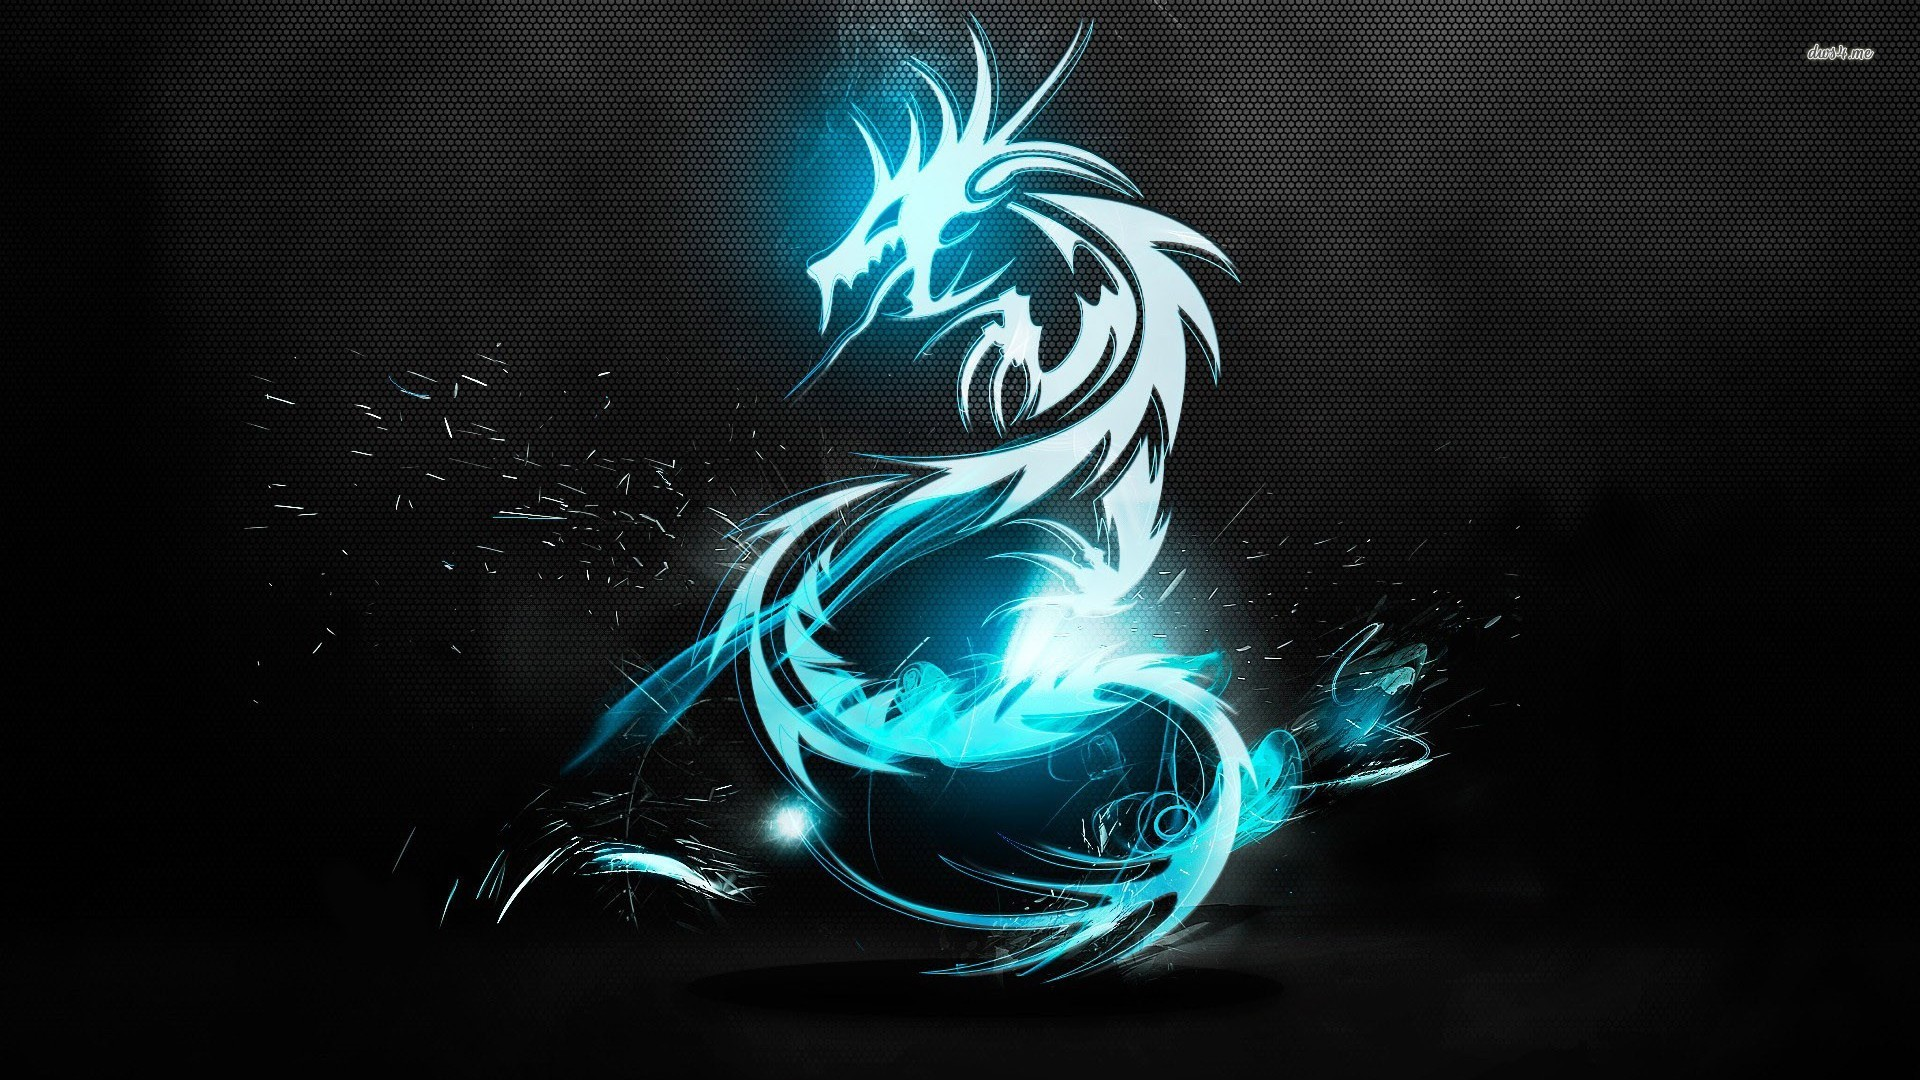 Cool-Dragon-HD-Backgrounds-Free-Download-wallpaper-wpc9003753